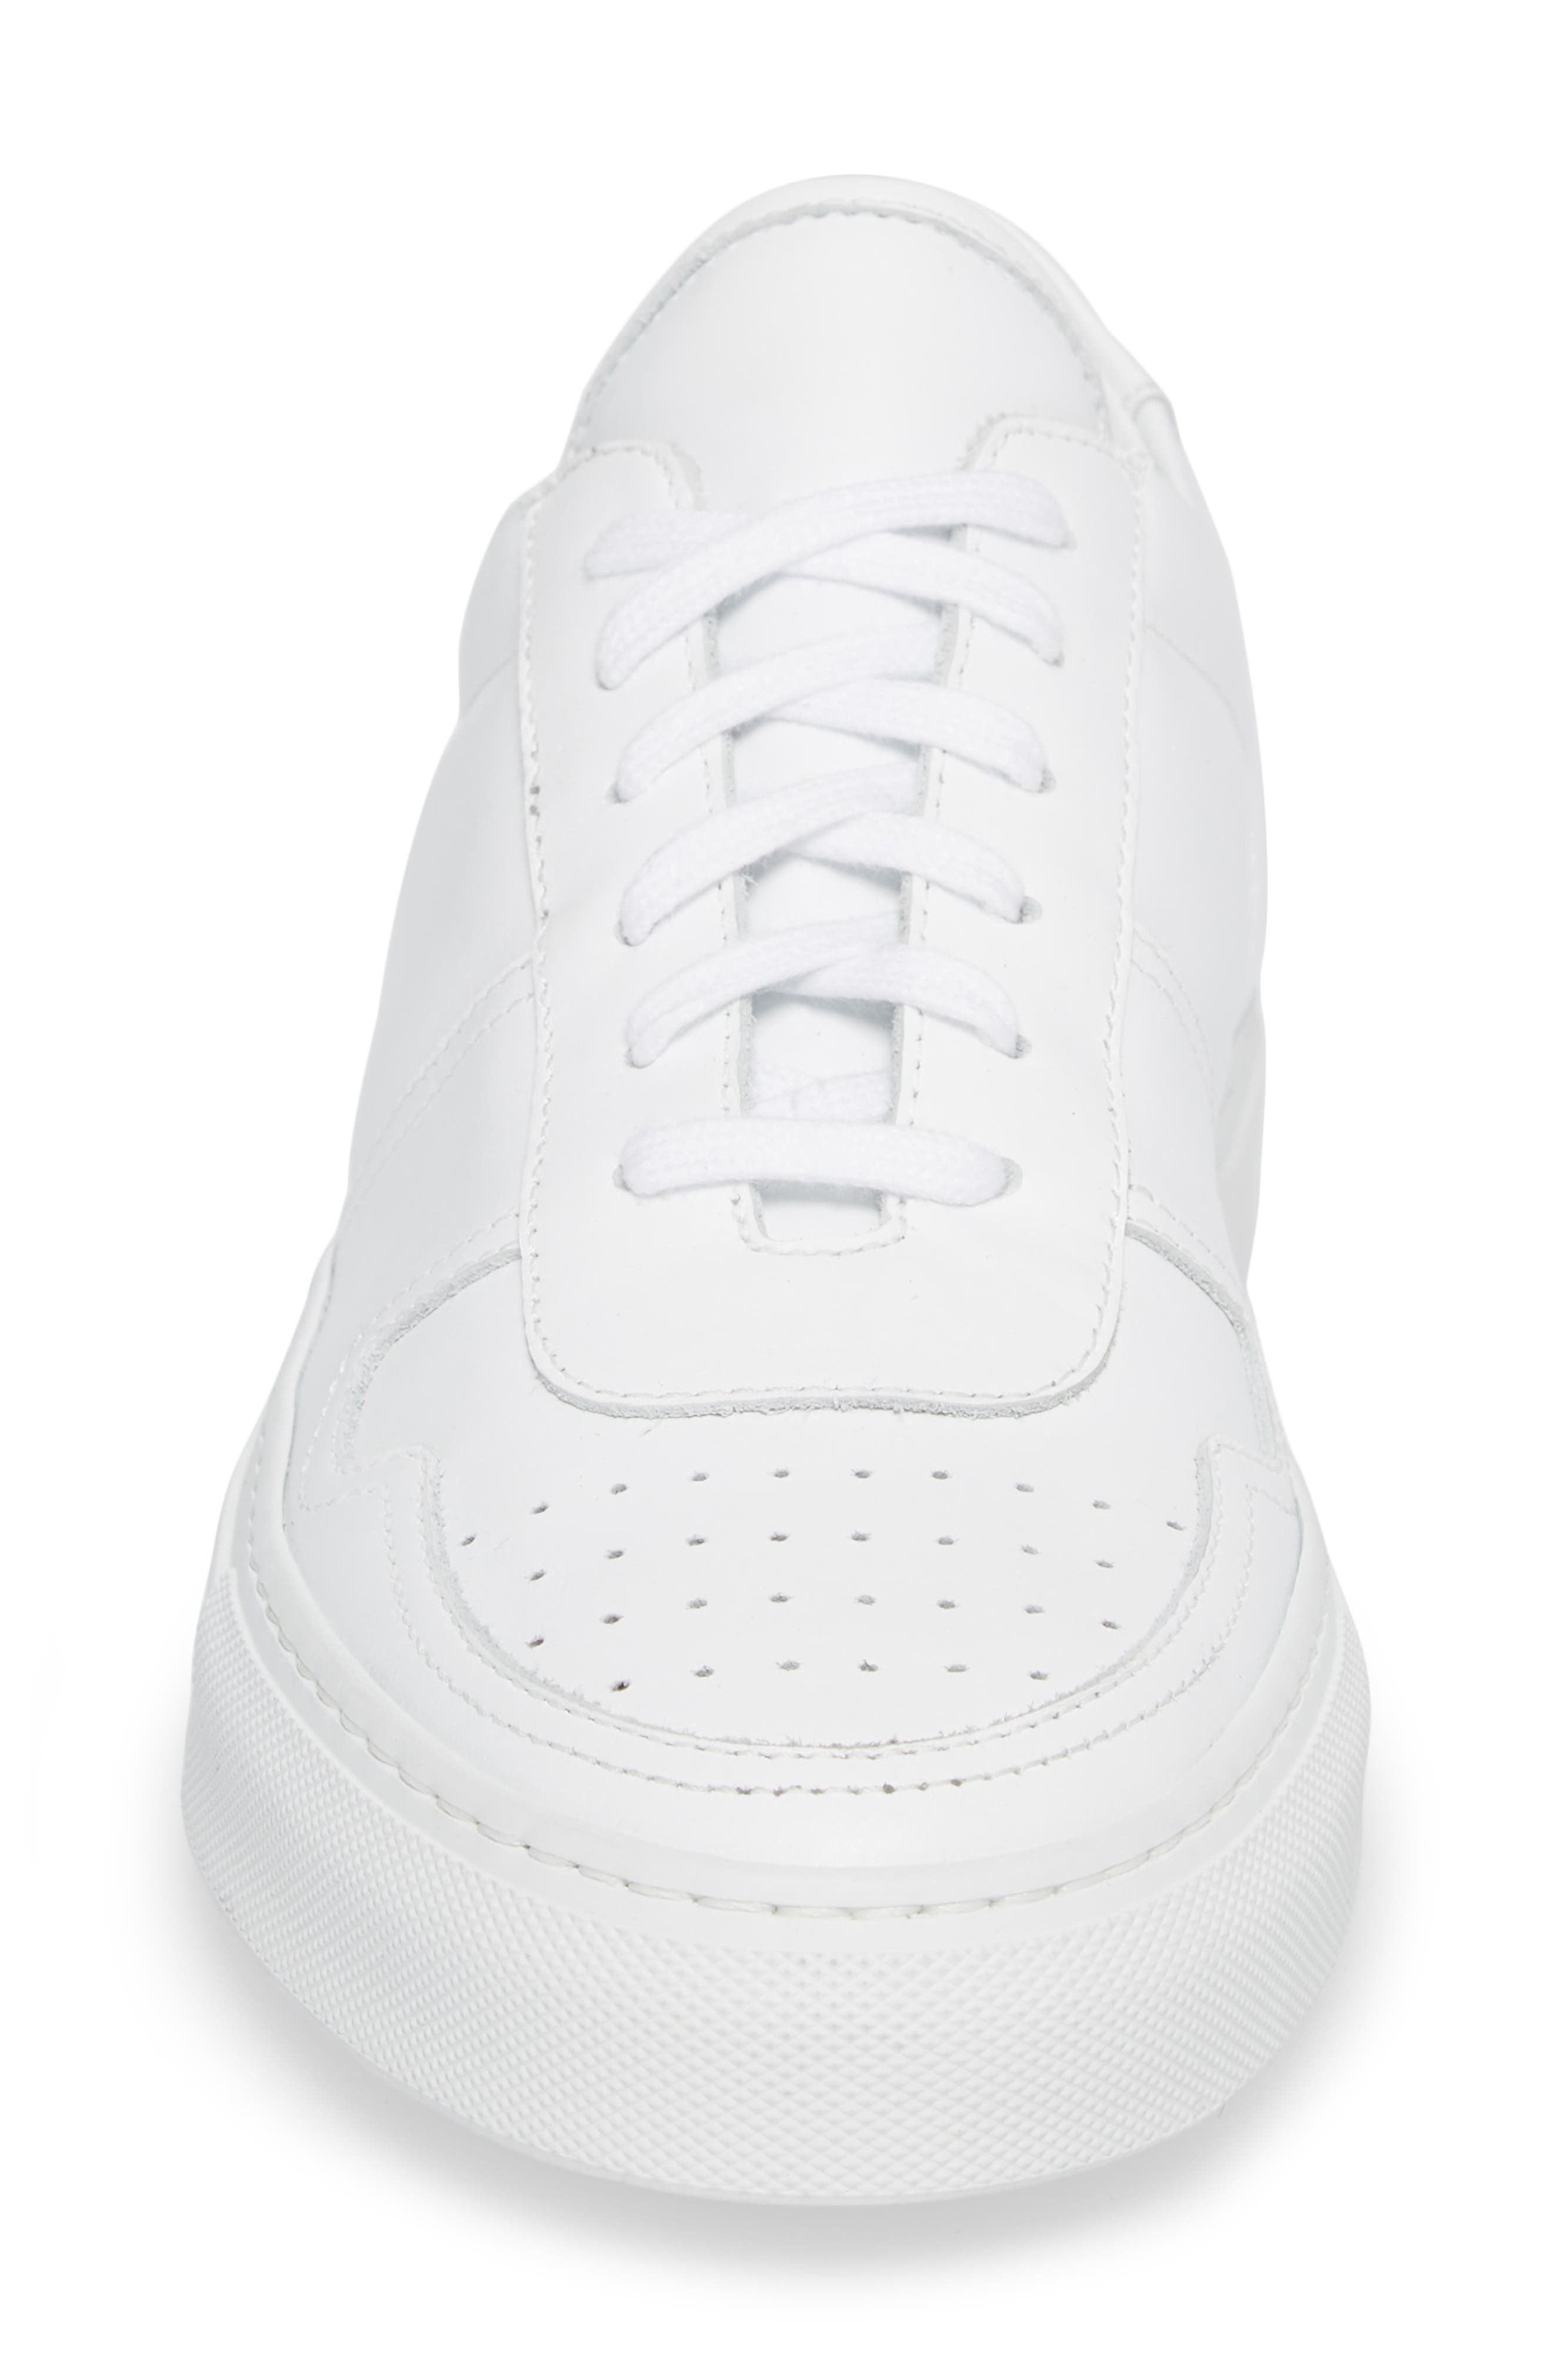 Bball Low Top Sneaker,                             Alternate thumbnail 4, color,                             WHITE LEATHER